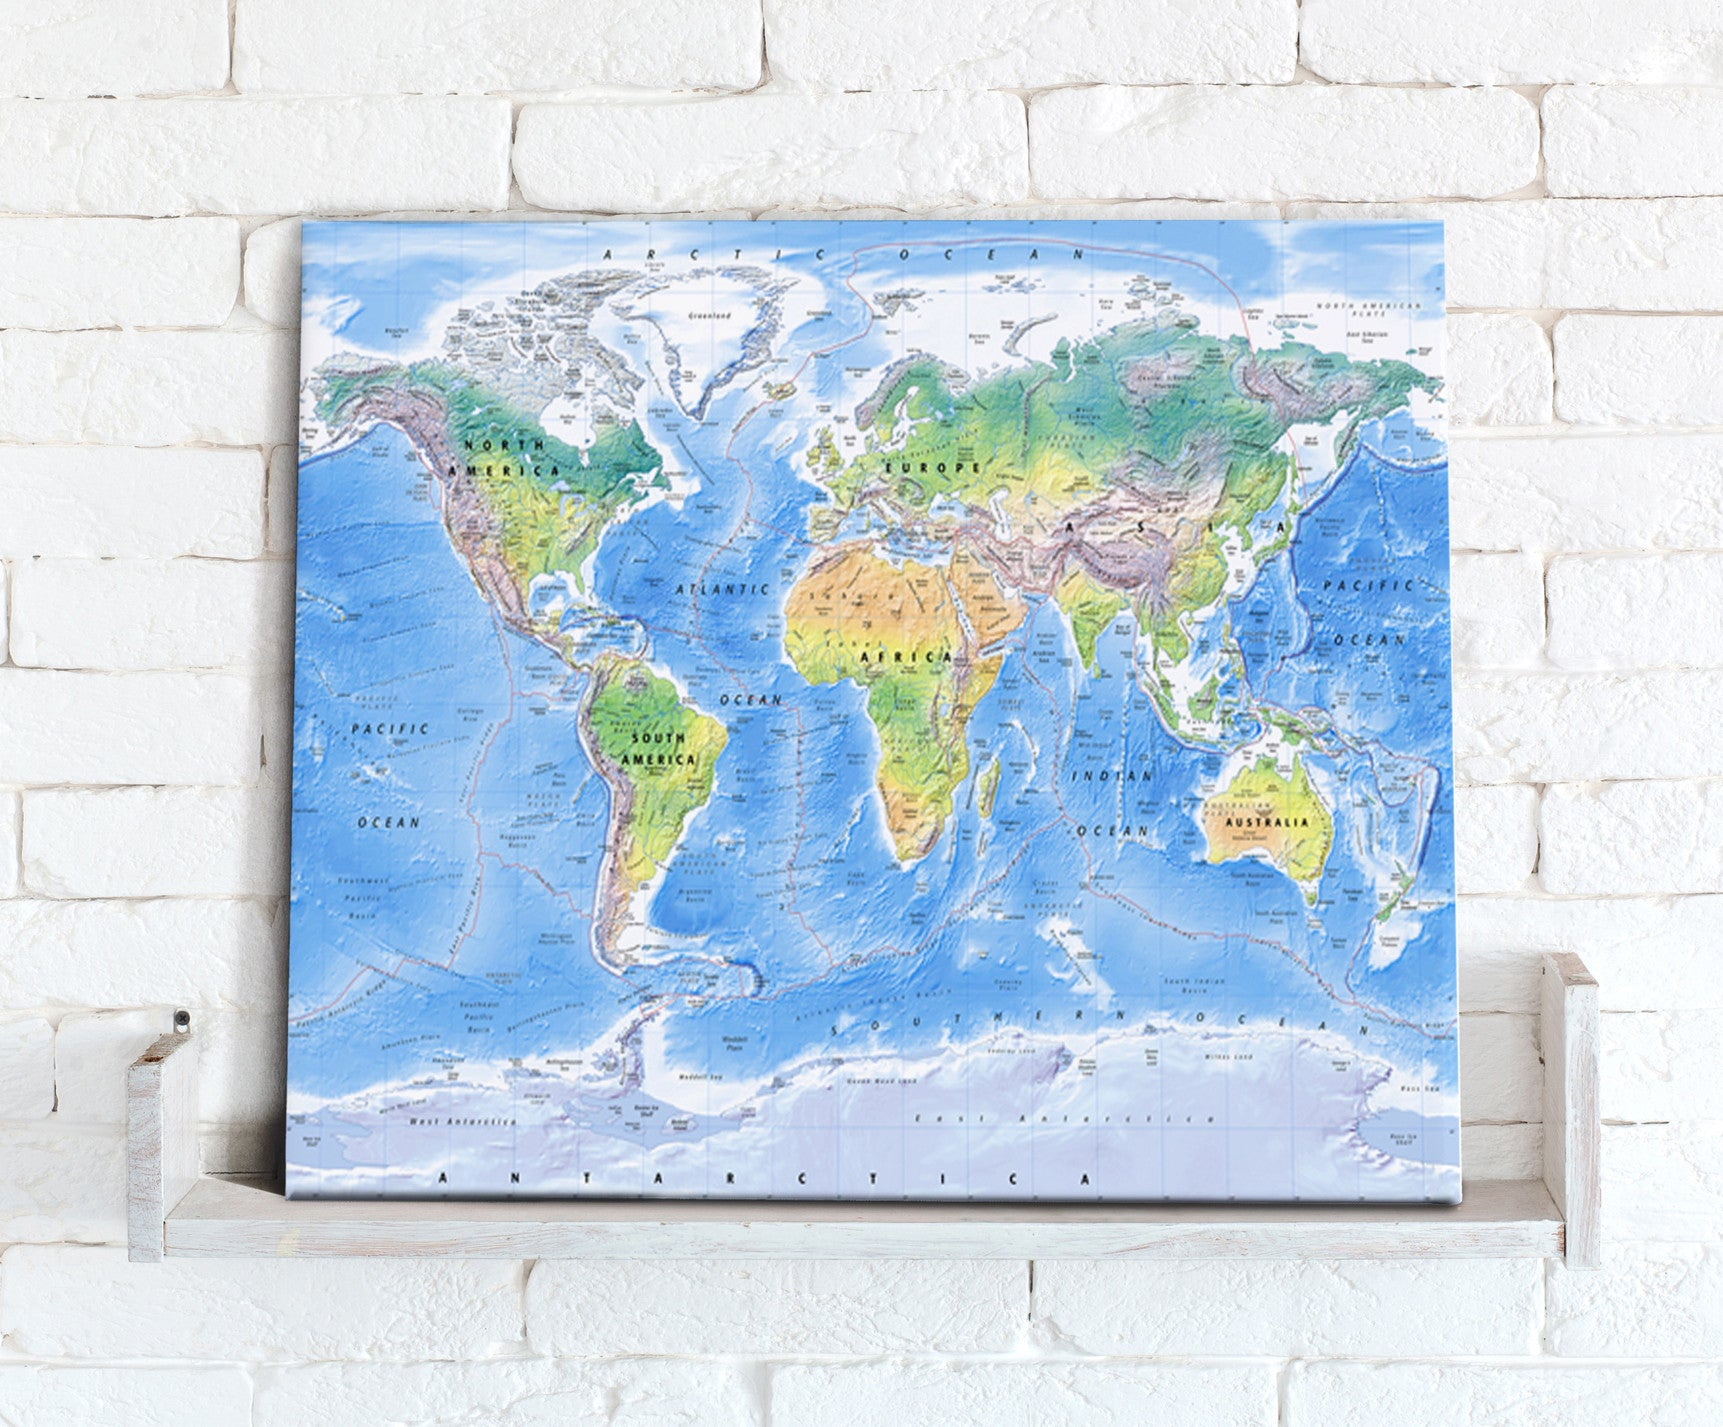 Map canvas physical world map from love maps on map canvas physical world map love maps on gumiabroncs Choice Image